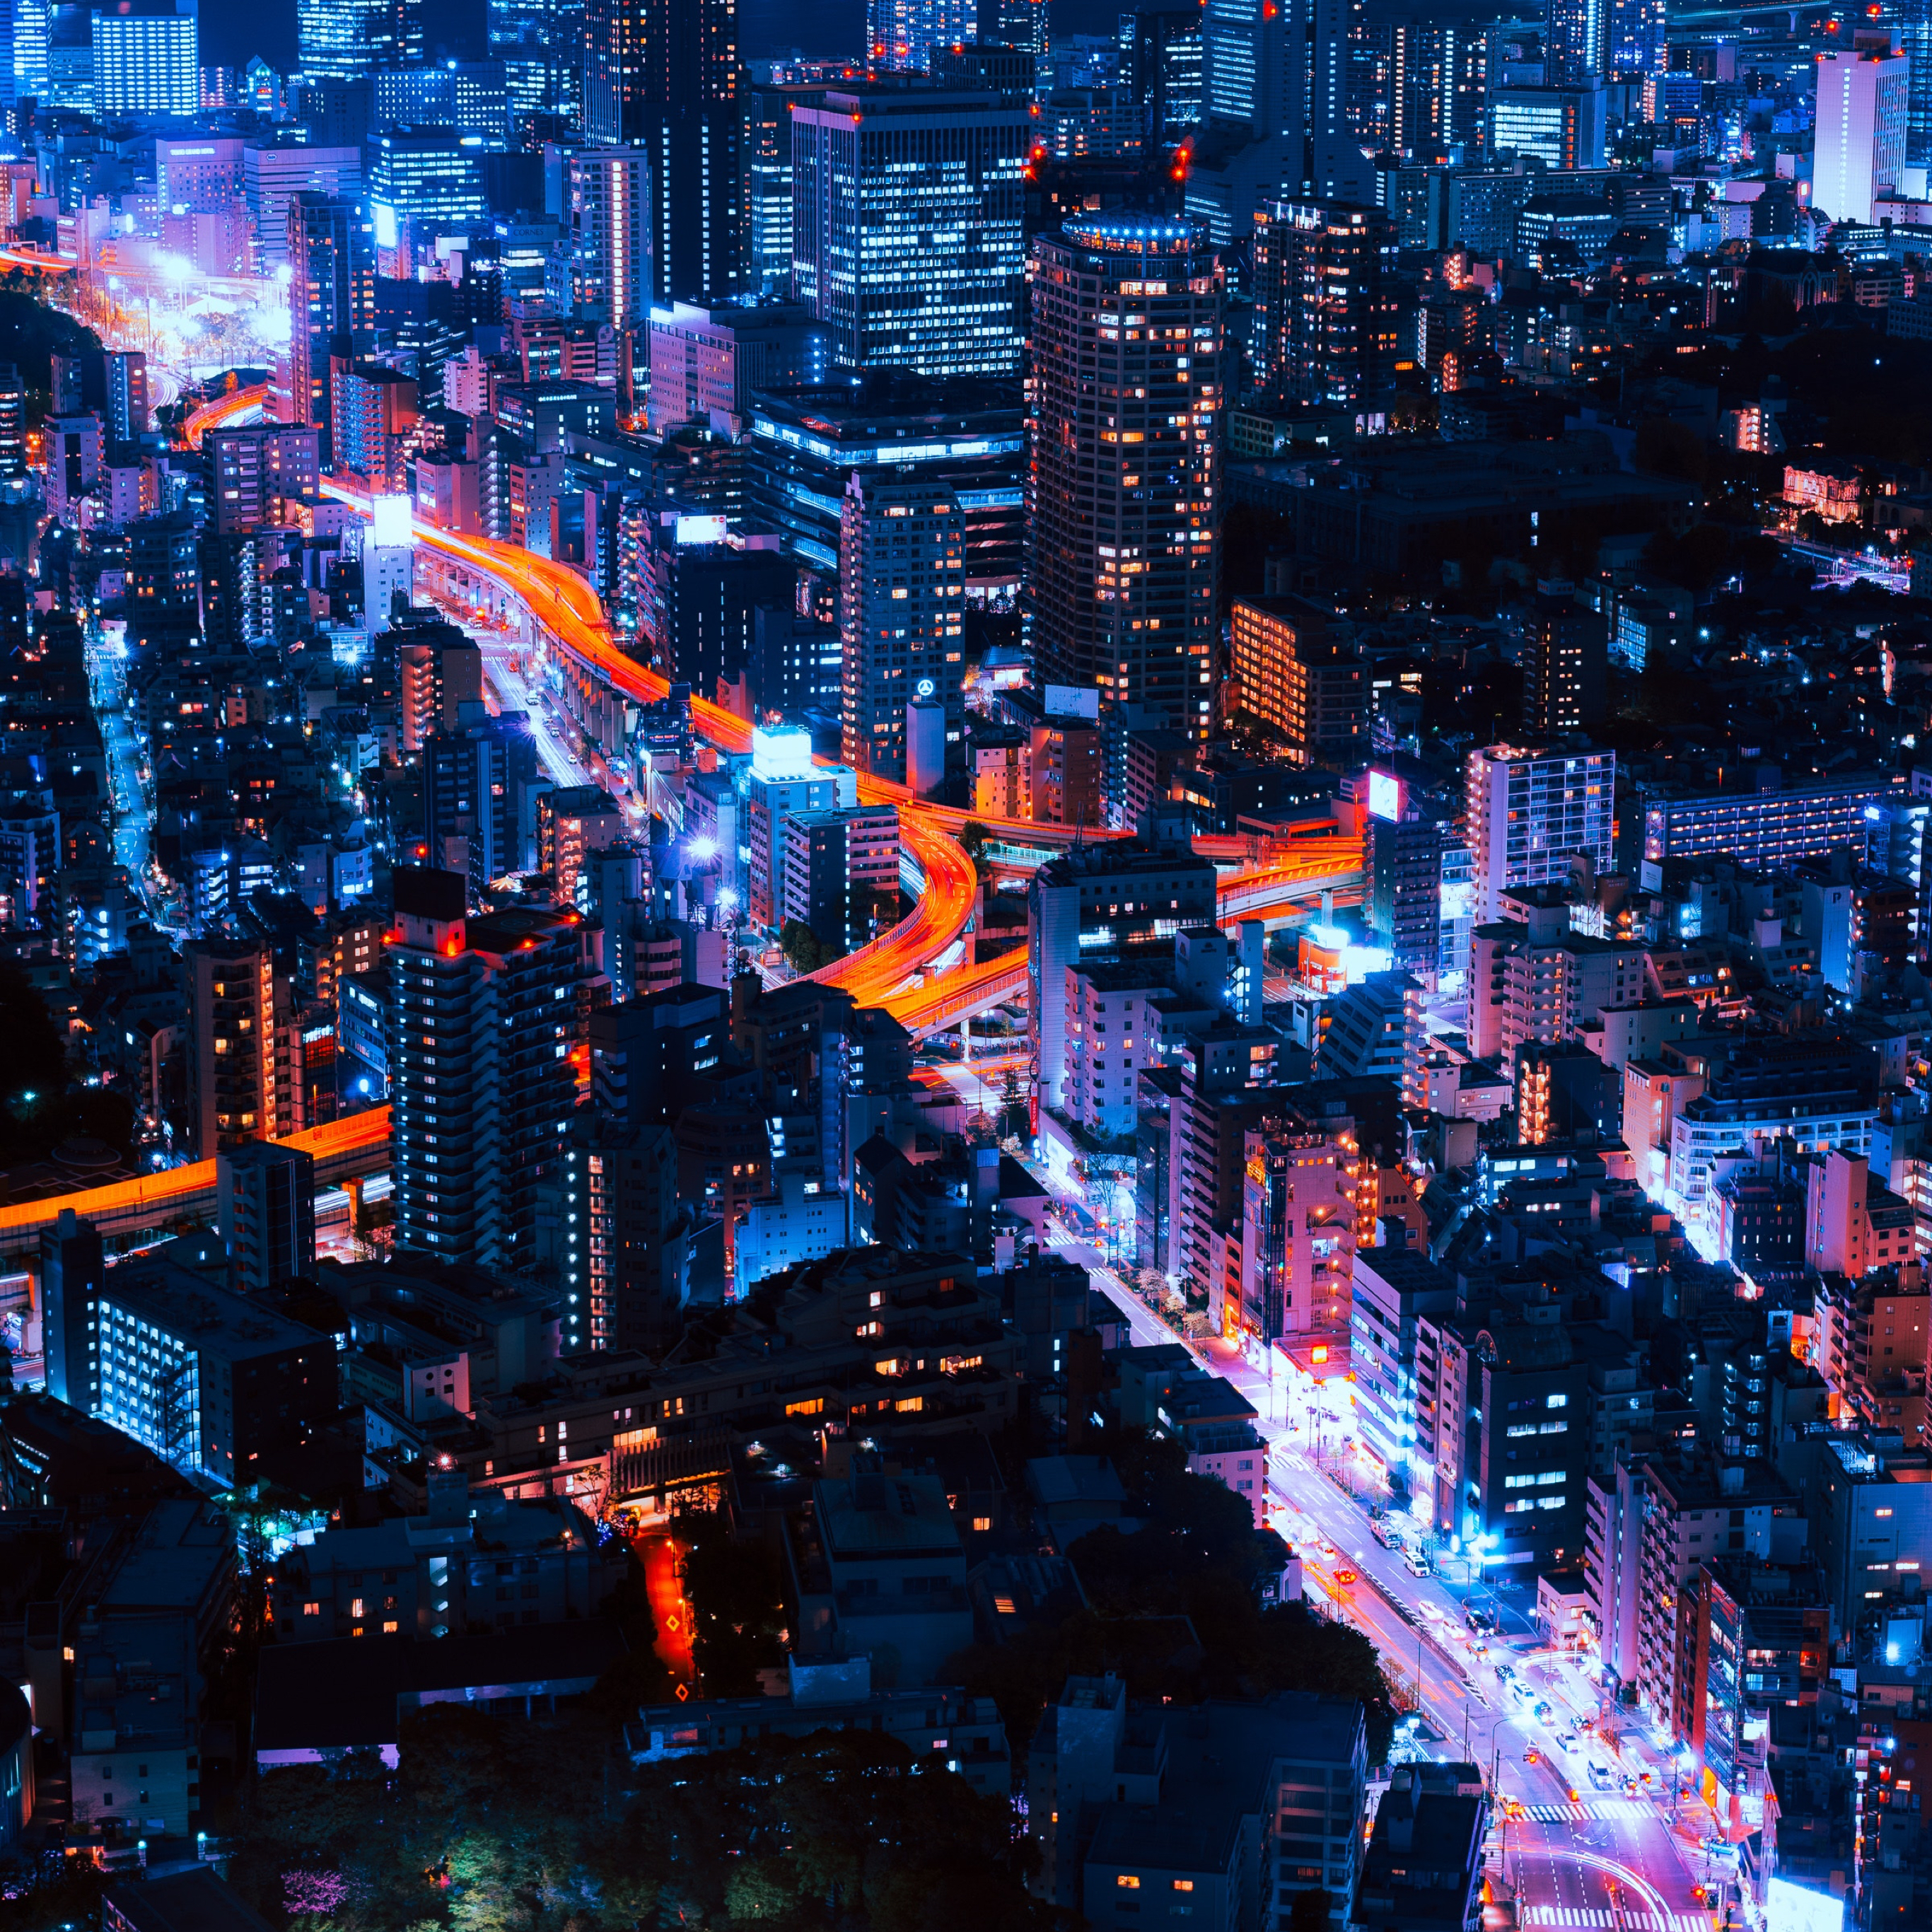 Image 2 Wallpaper: Wallpaper Weekends: Tokyo Infinity For IPhone, IPad, And